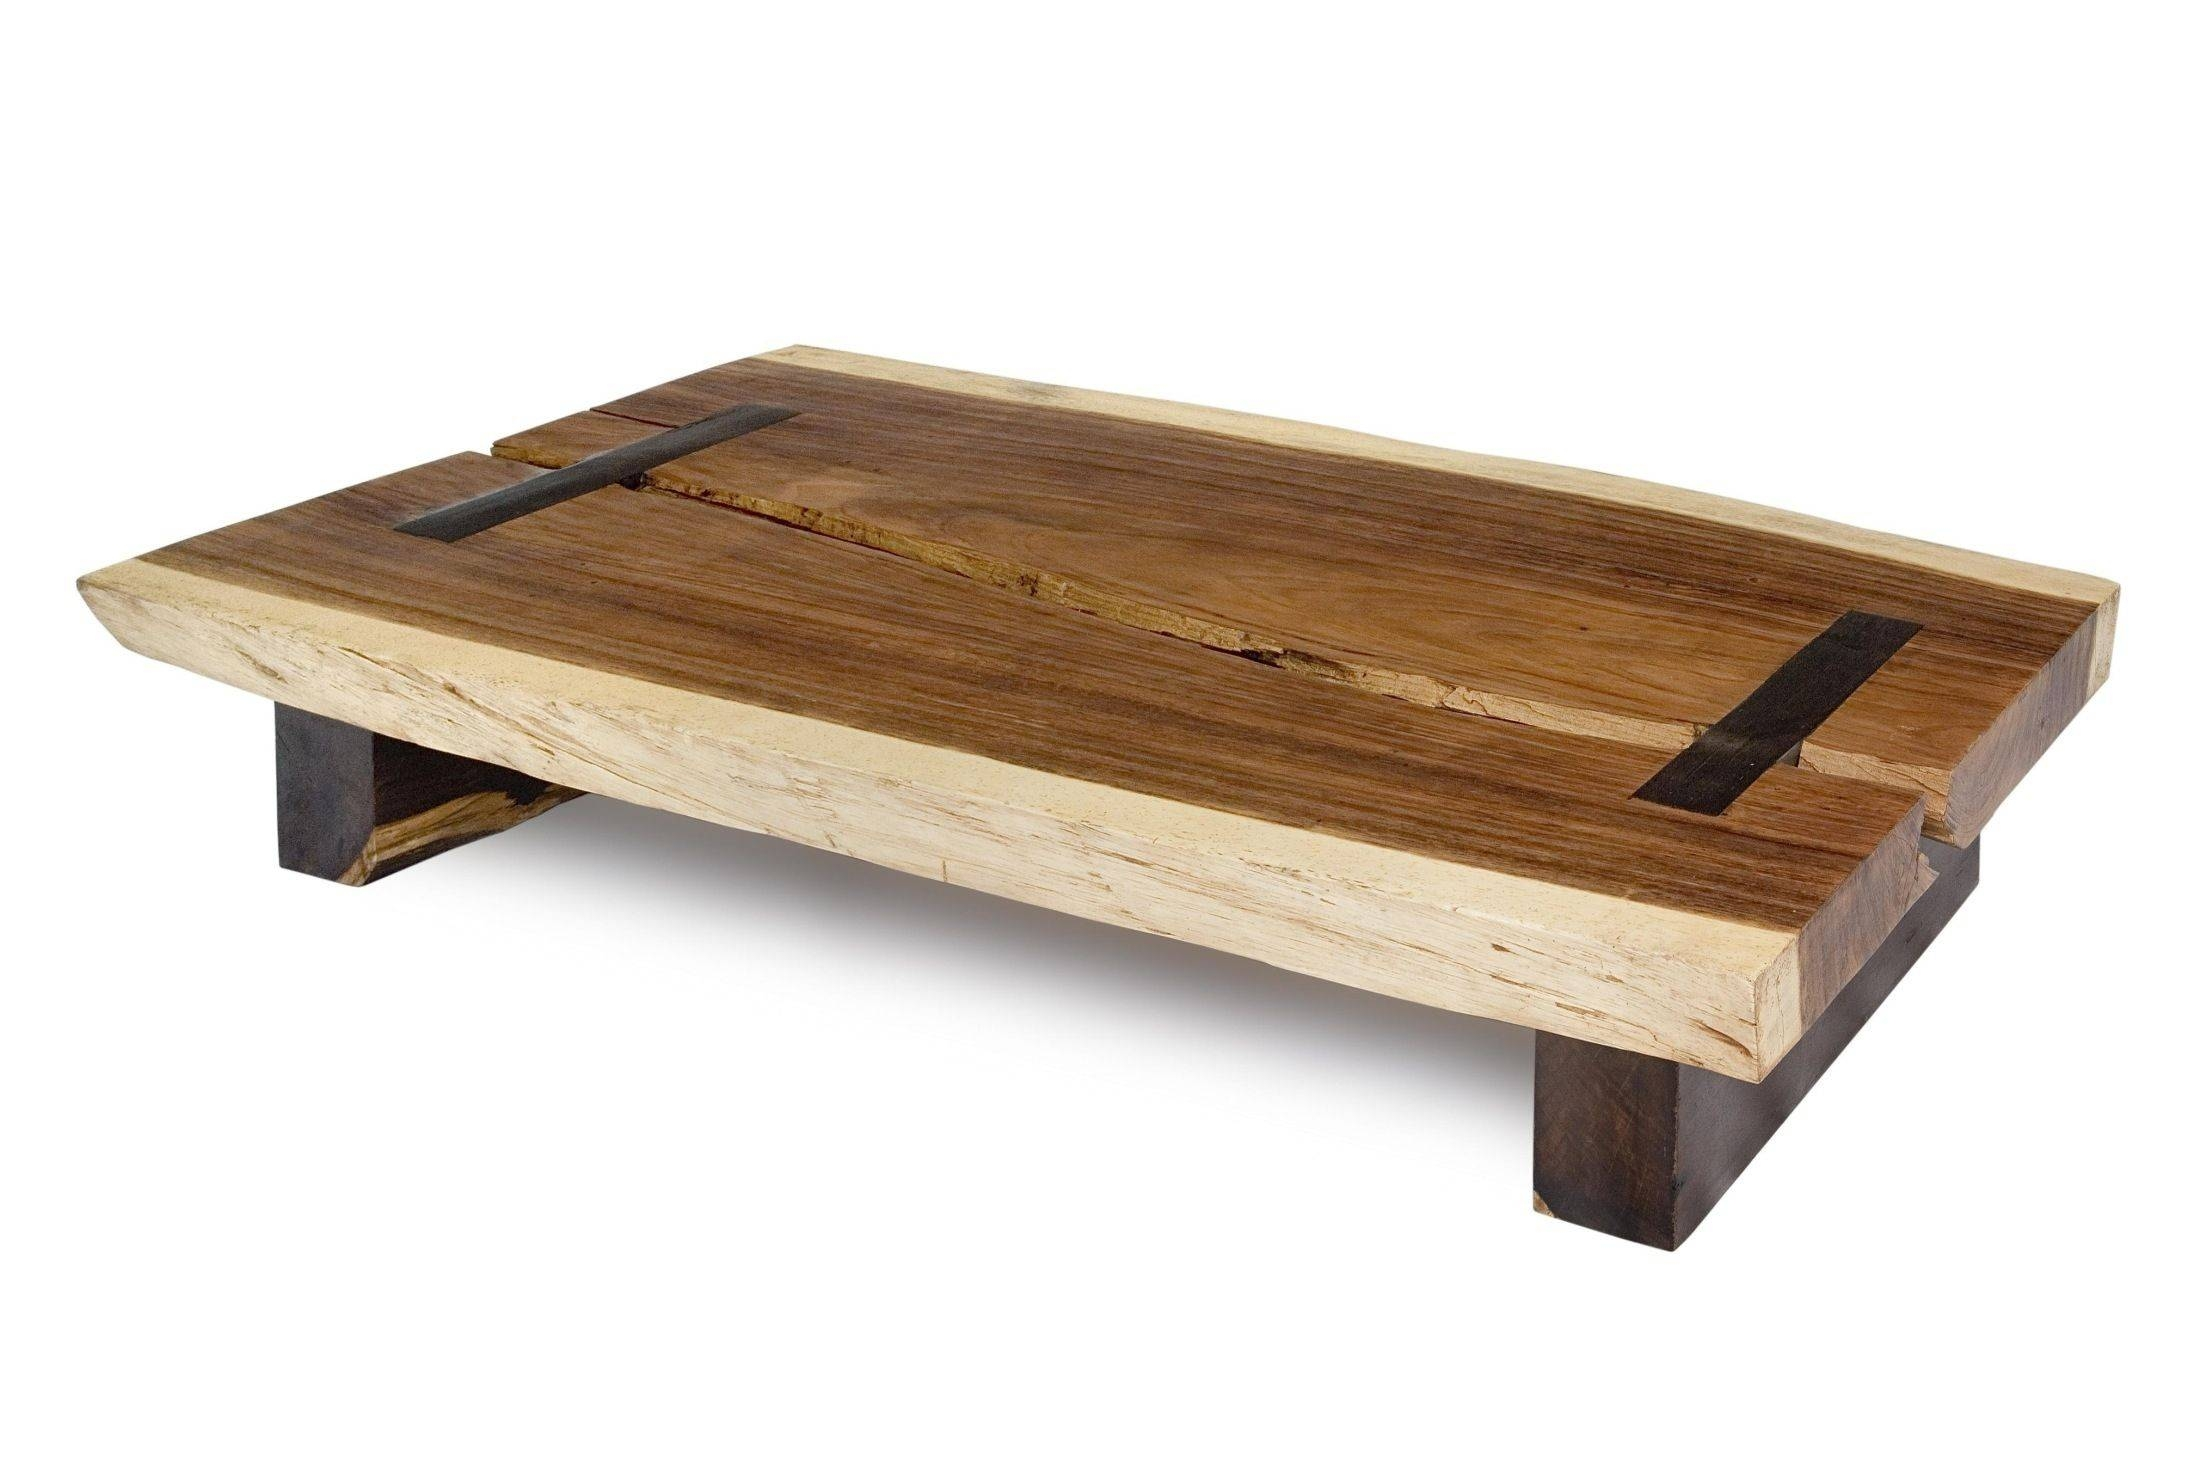 15 Collection of Reclaimed Wood Coffee Tables